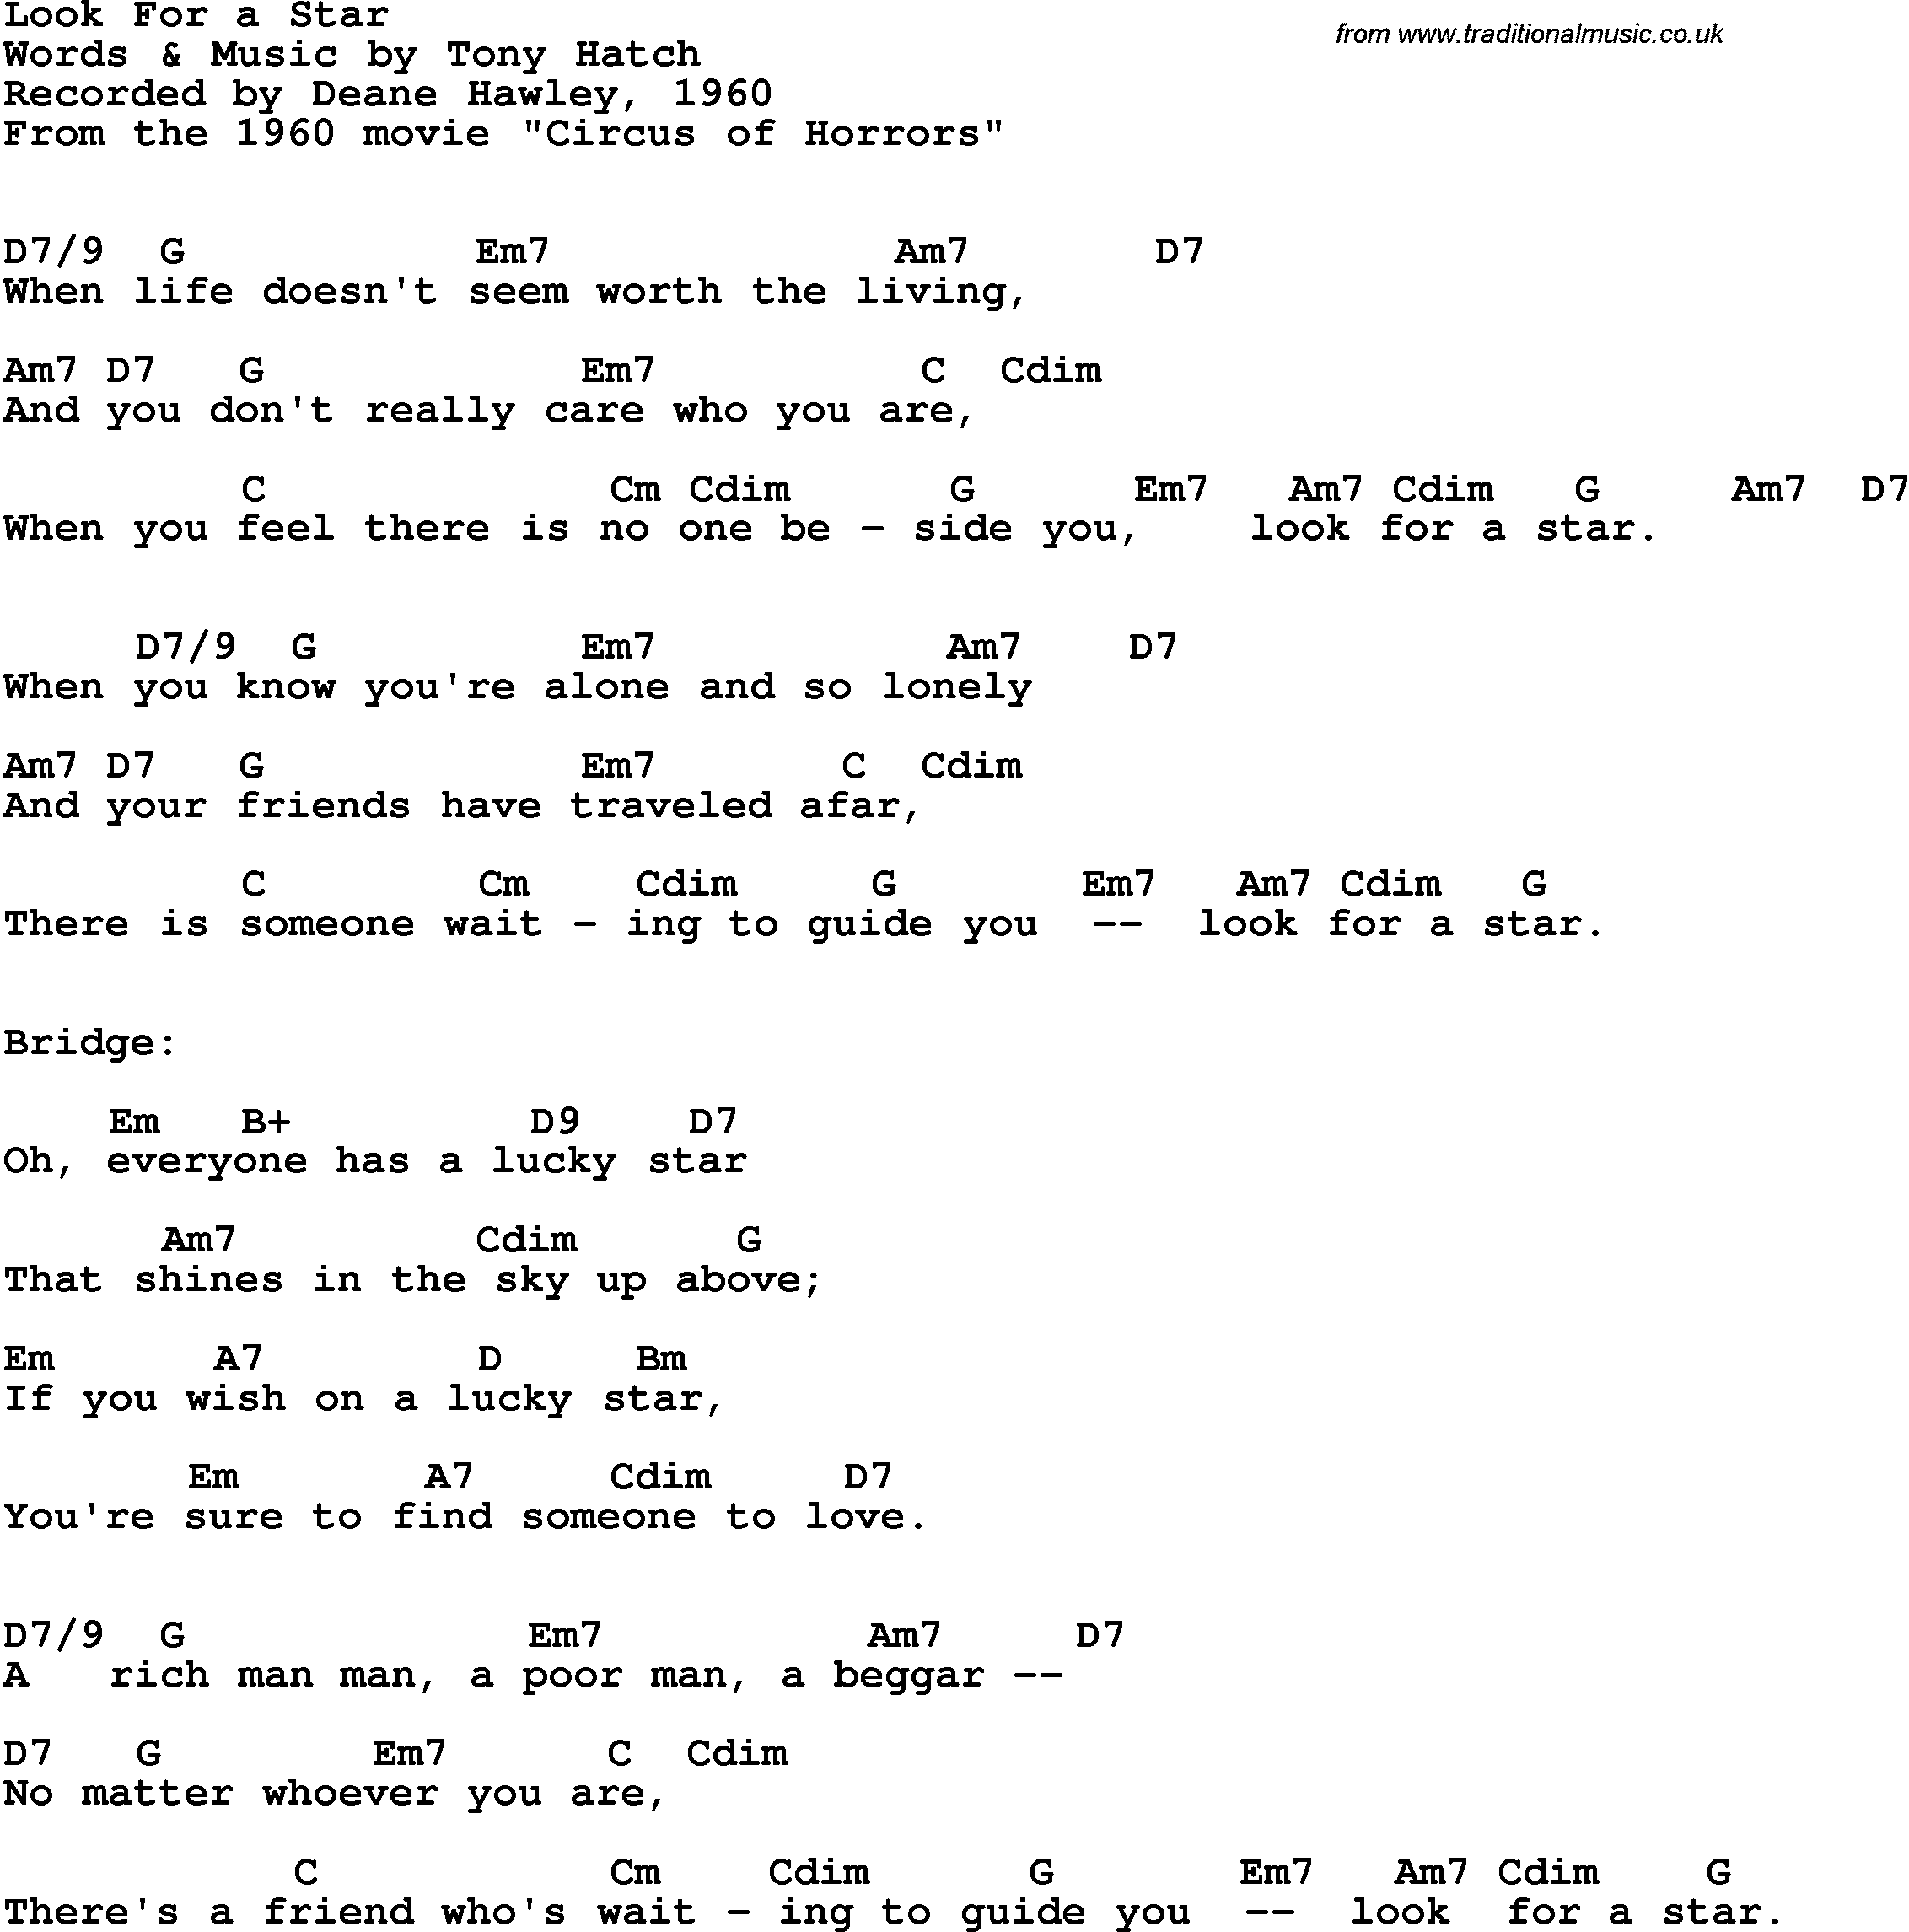 Song lyrics with guitar chords for look for a star deane hawley song lyrics with guitar chords for look for a star deane hawley 1960 hexwebz Image collections